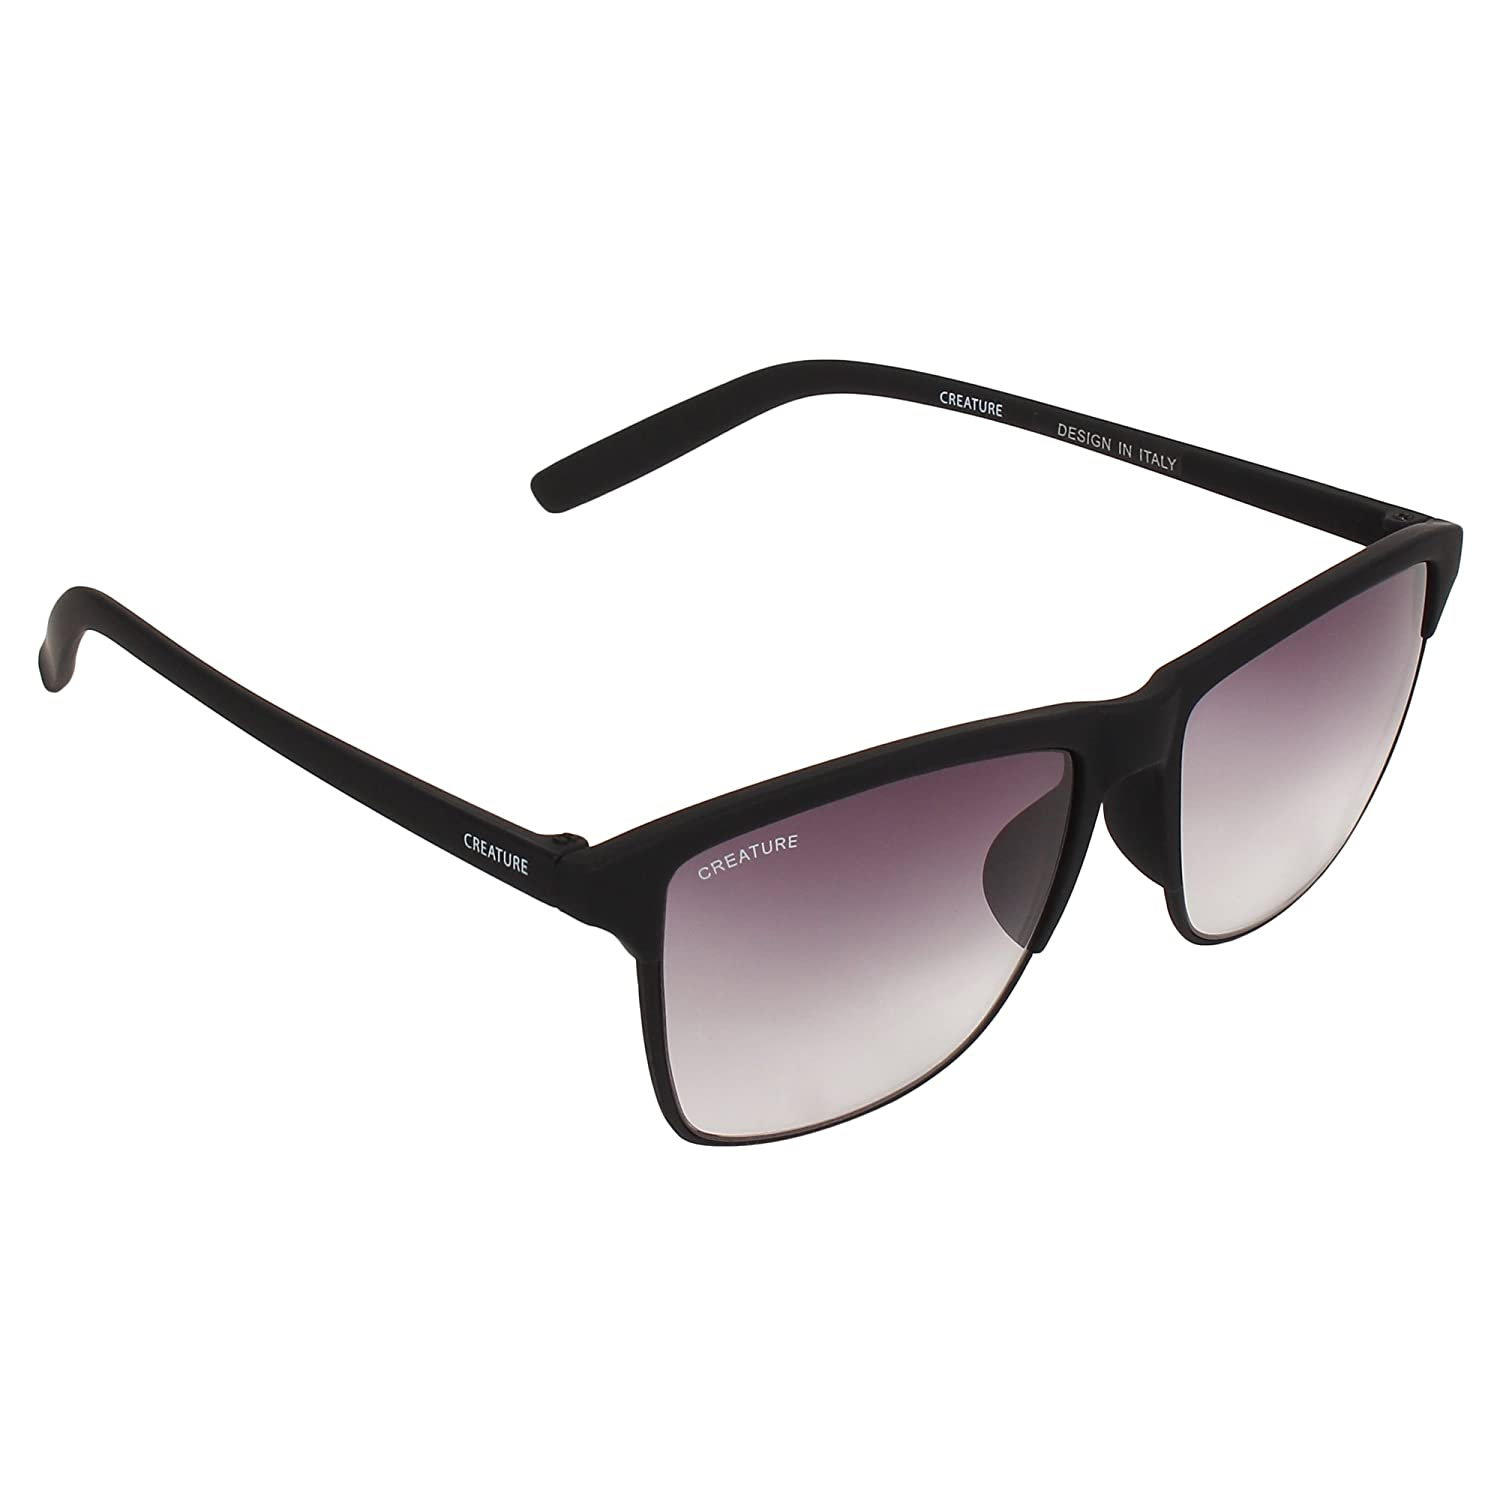 Creature Uv Protected Wayfarer Unisex Sunglasses(Doit-001|53|Purple)